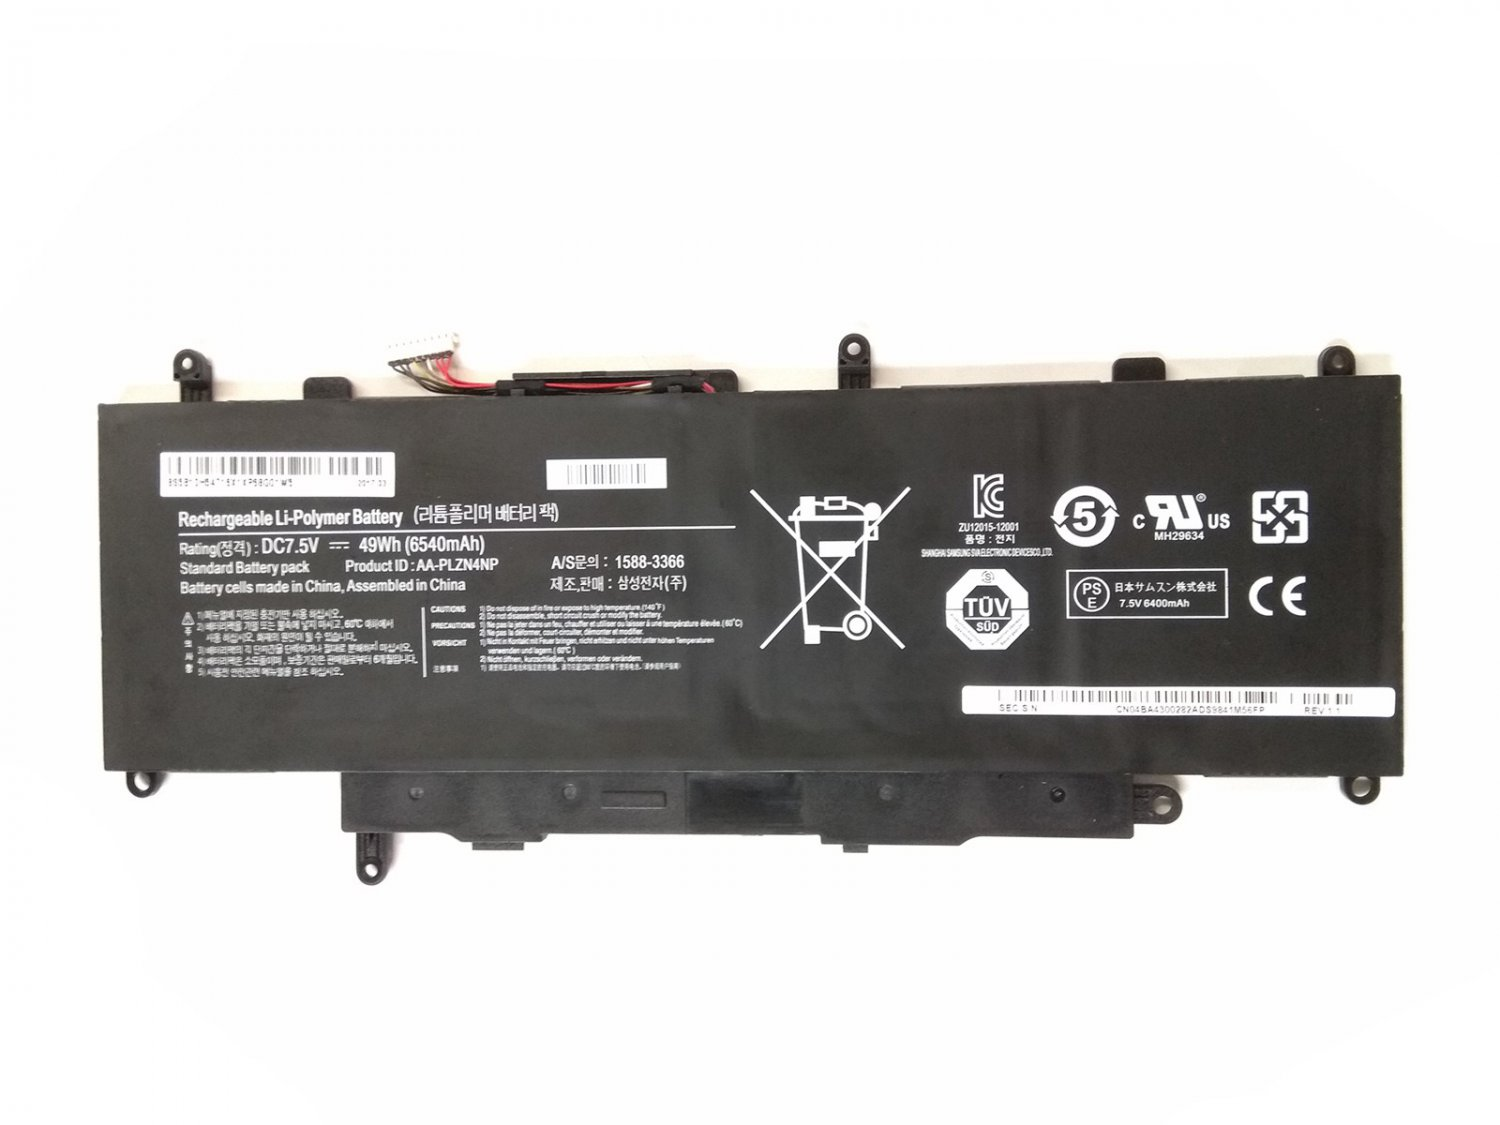 AA-PLZN4NP Battery For Samsung ATIV XE700T1C-G01DE XE700T1C-H01UK